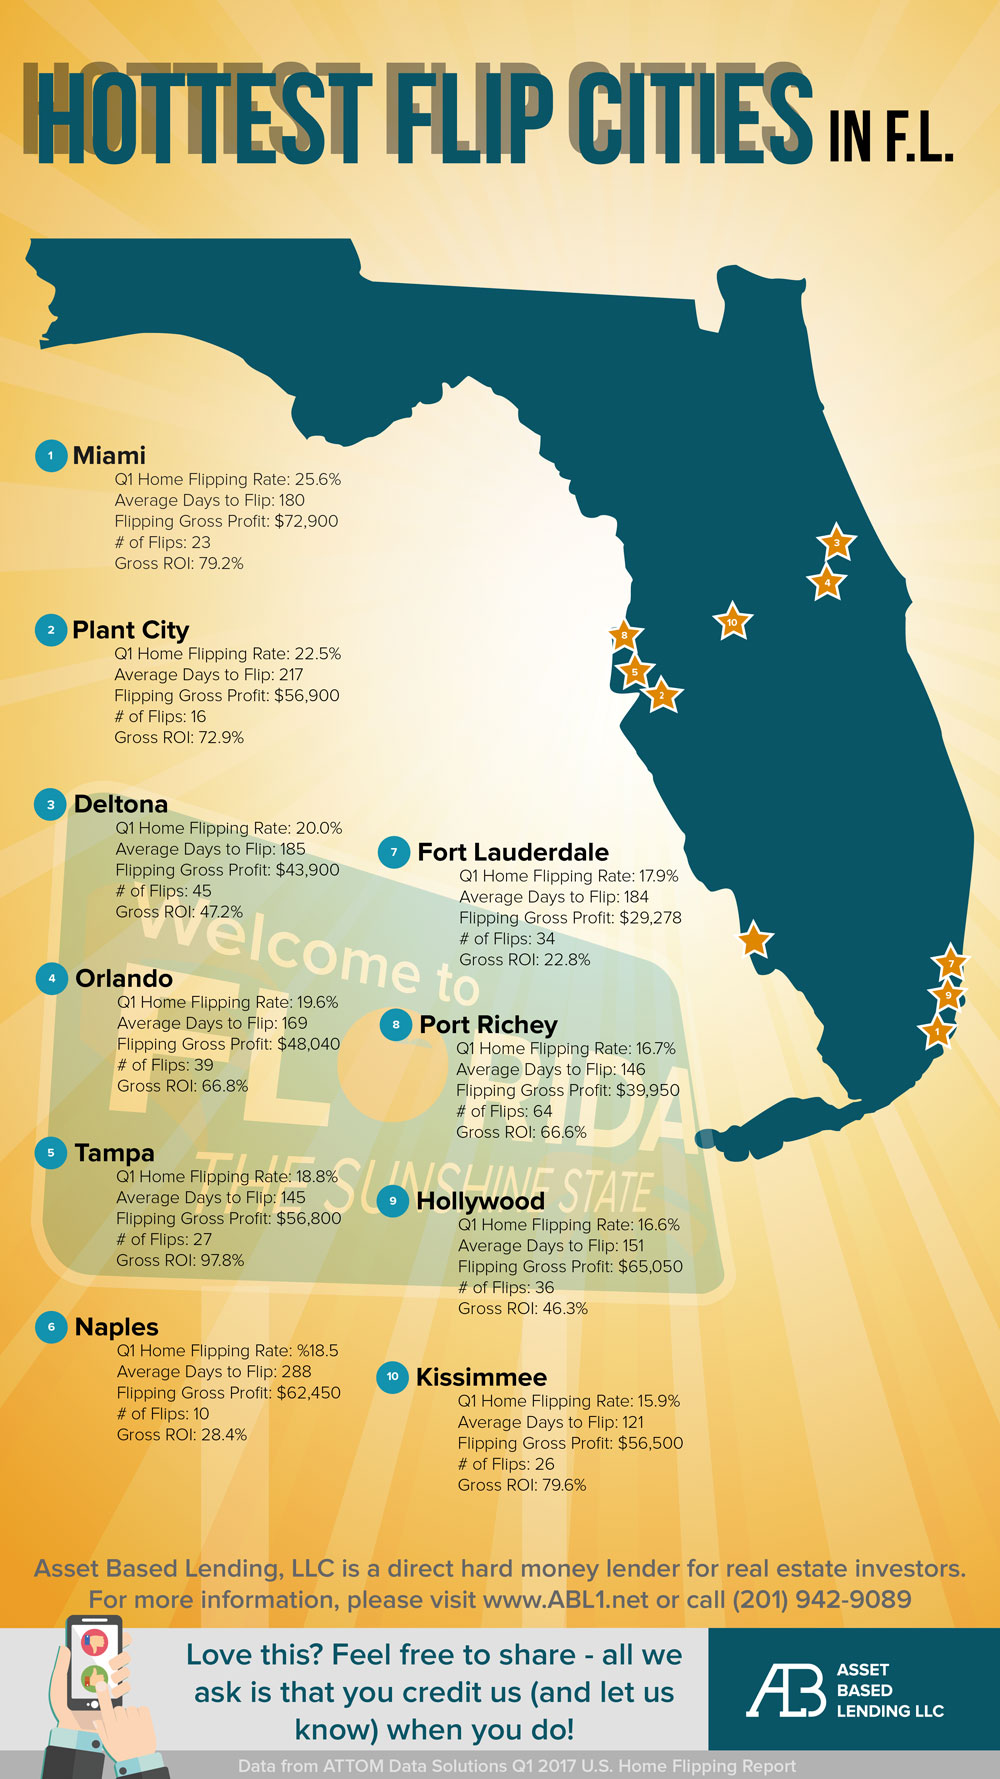 Top fix and flip cities in Florida